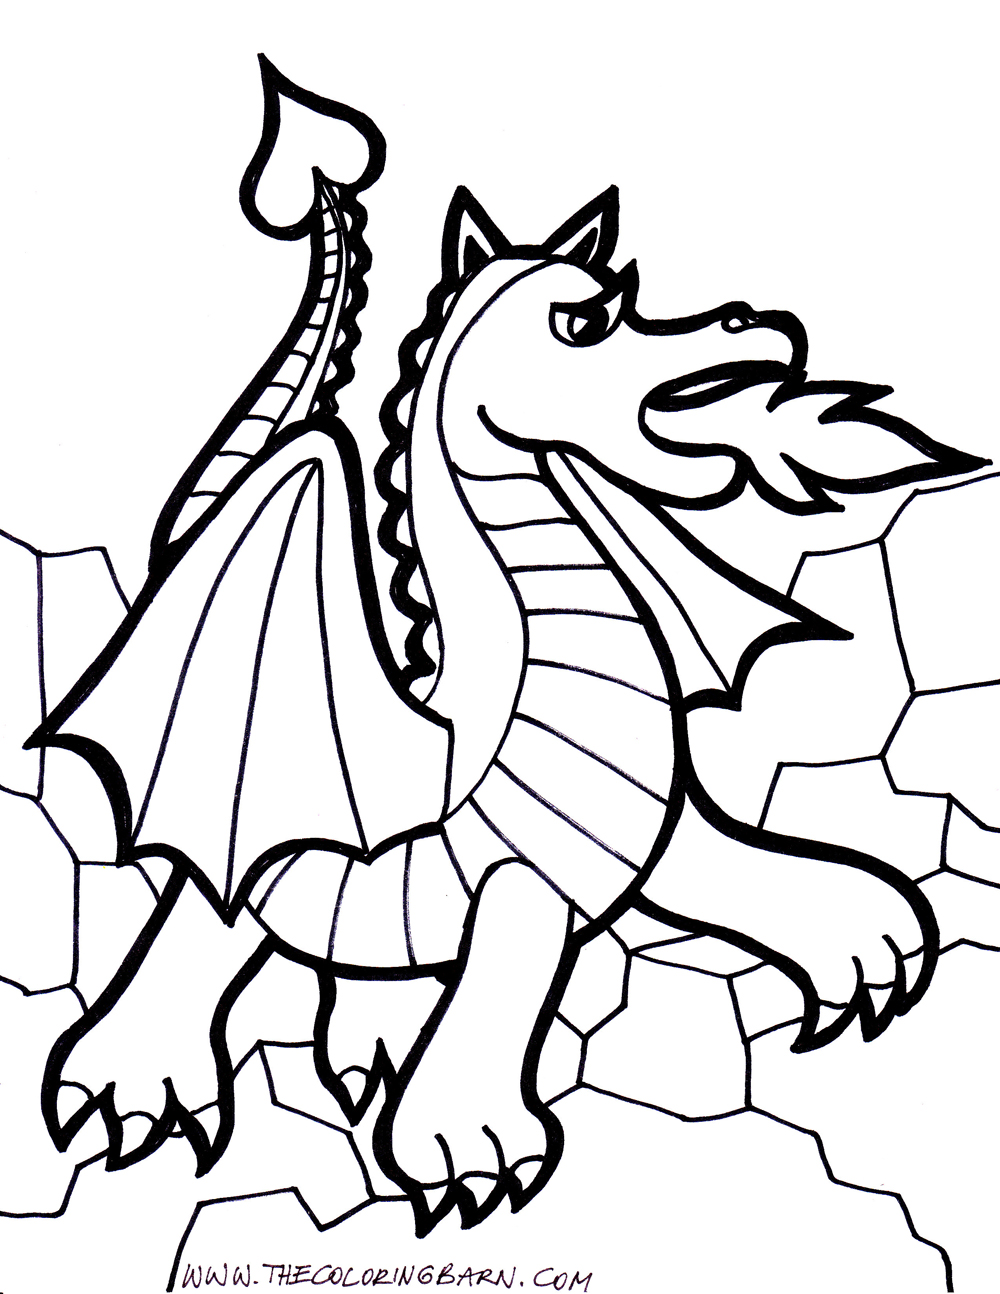 1000x1294 download coloring pages dragon coloring page dragon coloring - Coloring Page Dragon